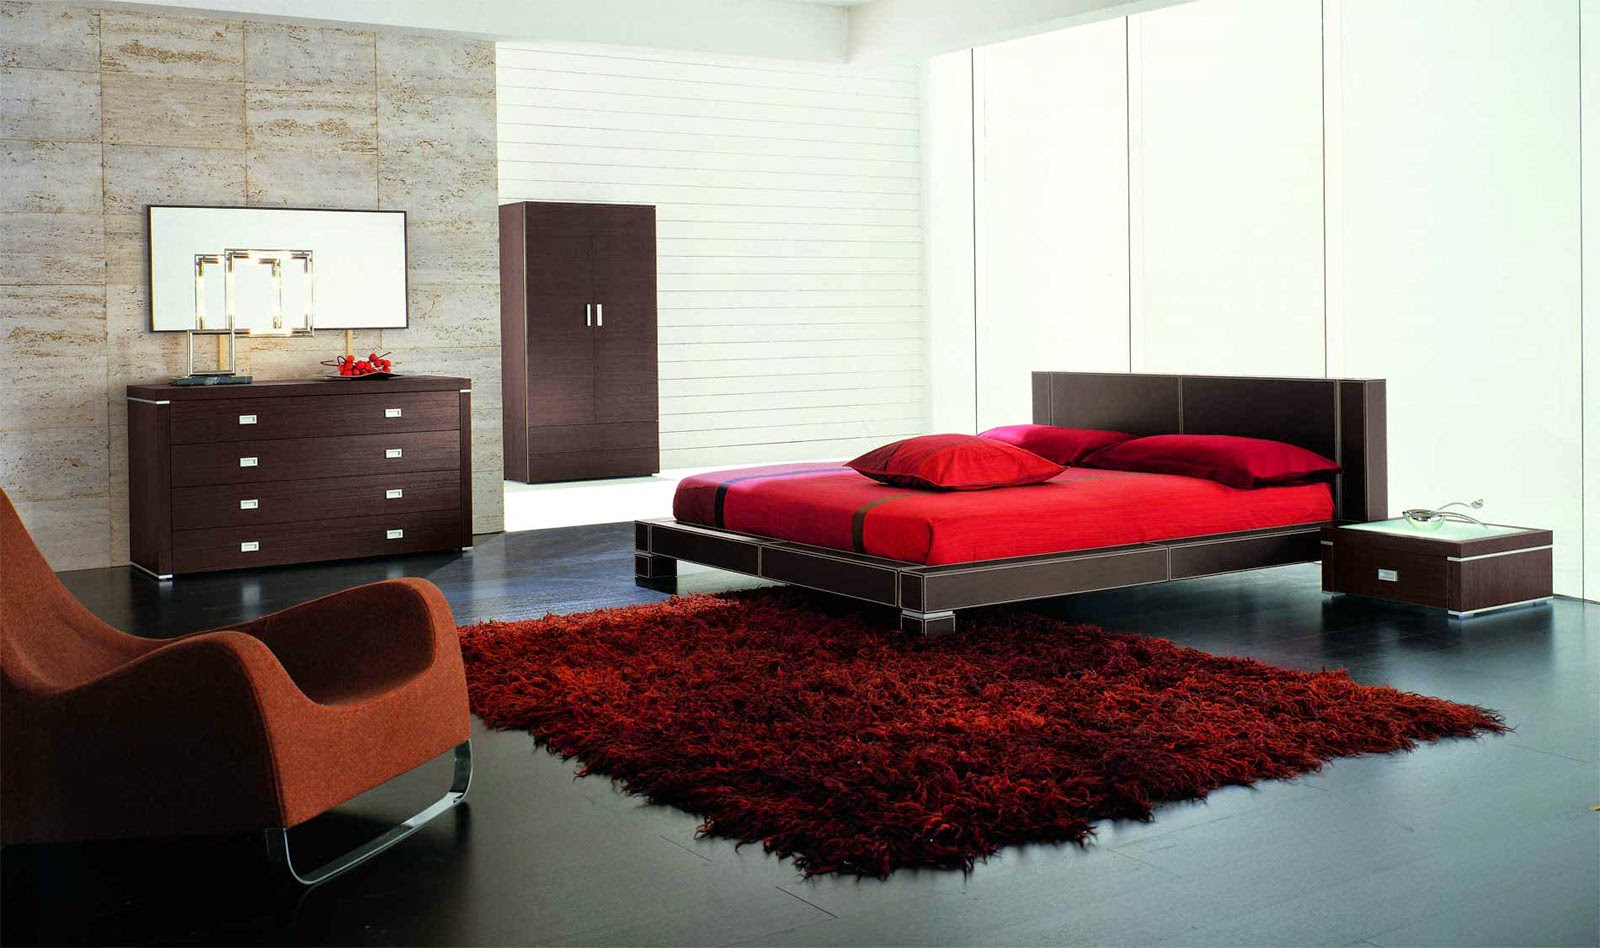 Furniture-Luxury-Bedroom-Minimalist-place-Black-Red-Carpet-with-feathers